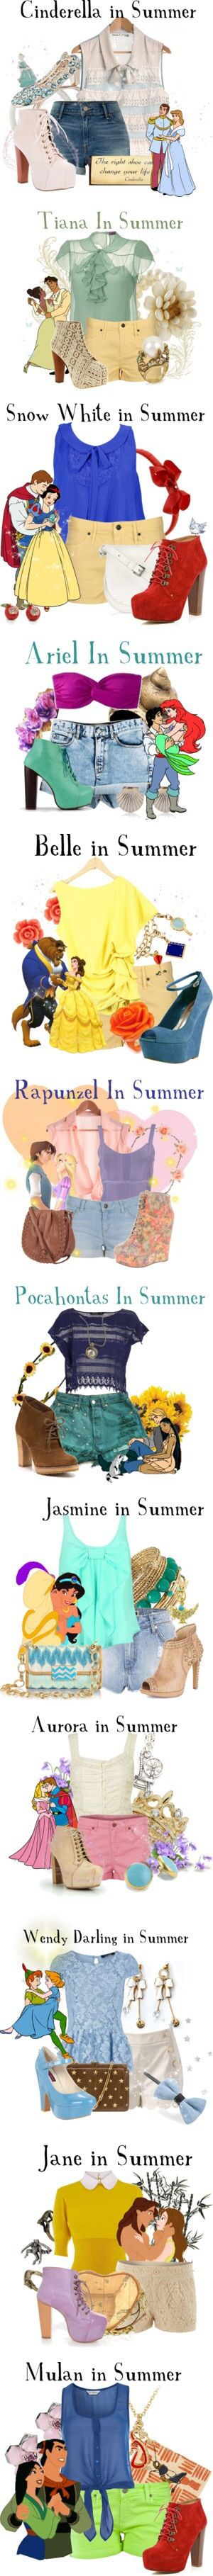 Disney princesses on summer attire.. ❤️